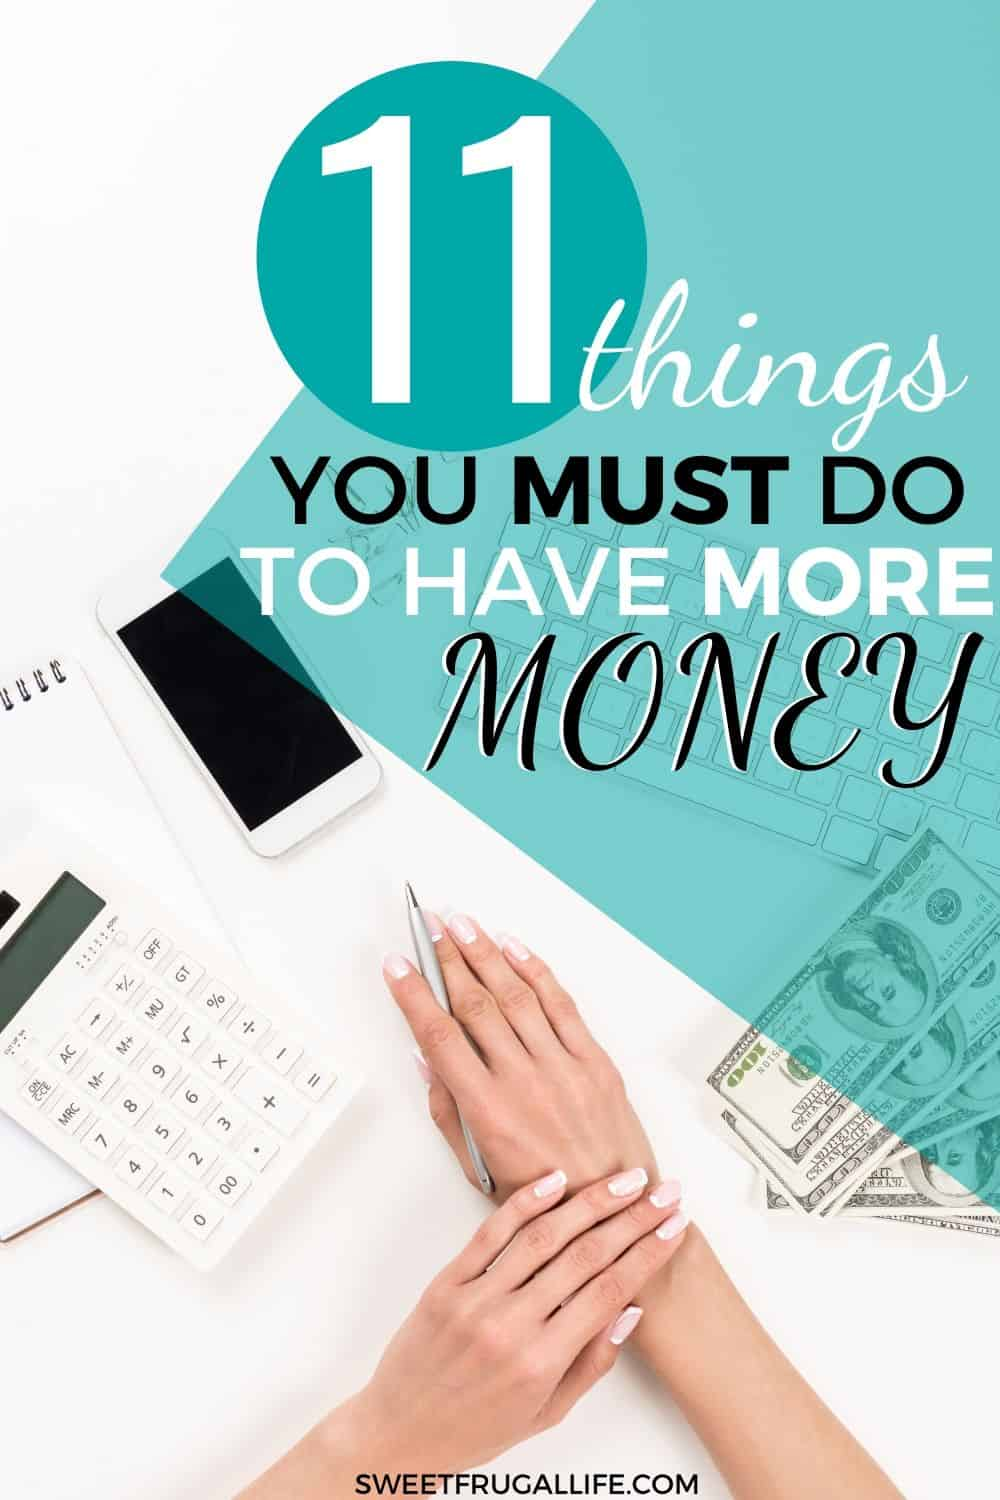 what can I do to have more money each month